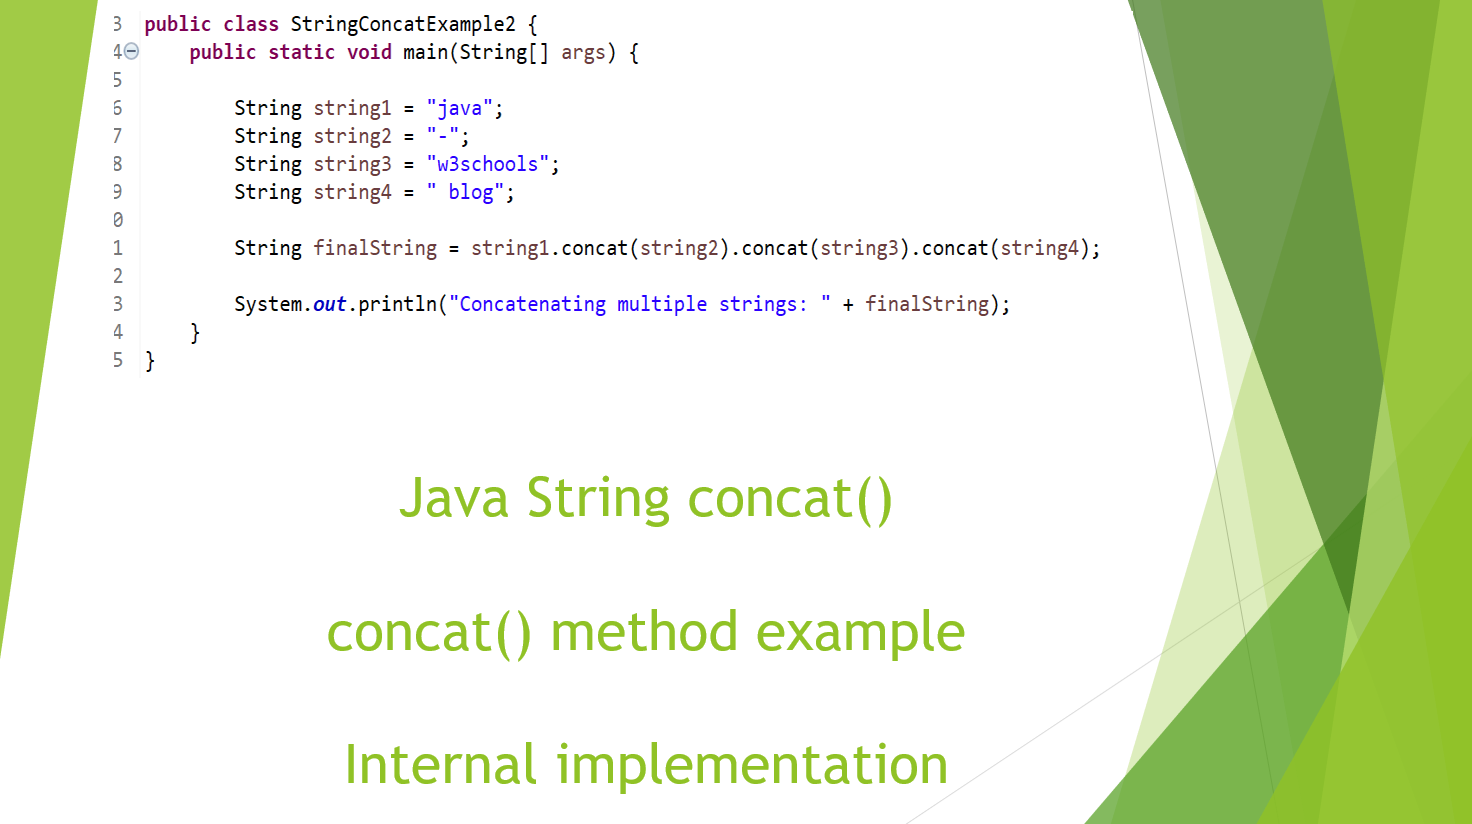 String concat() method in java with example - Internal